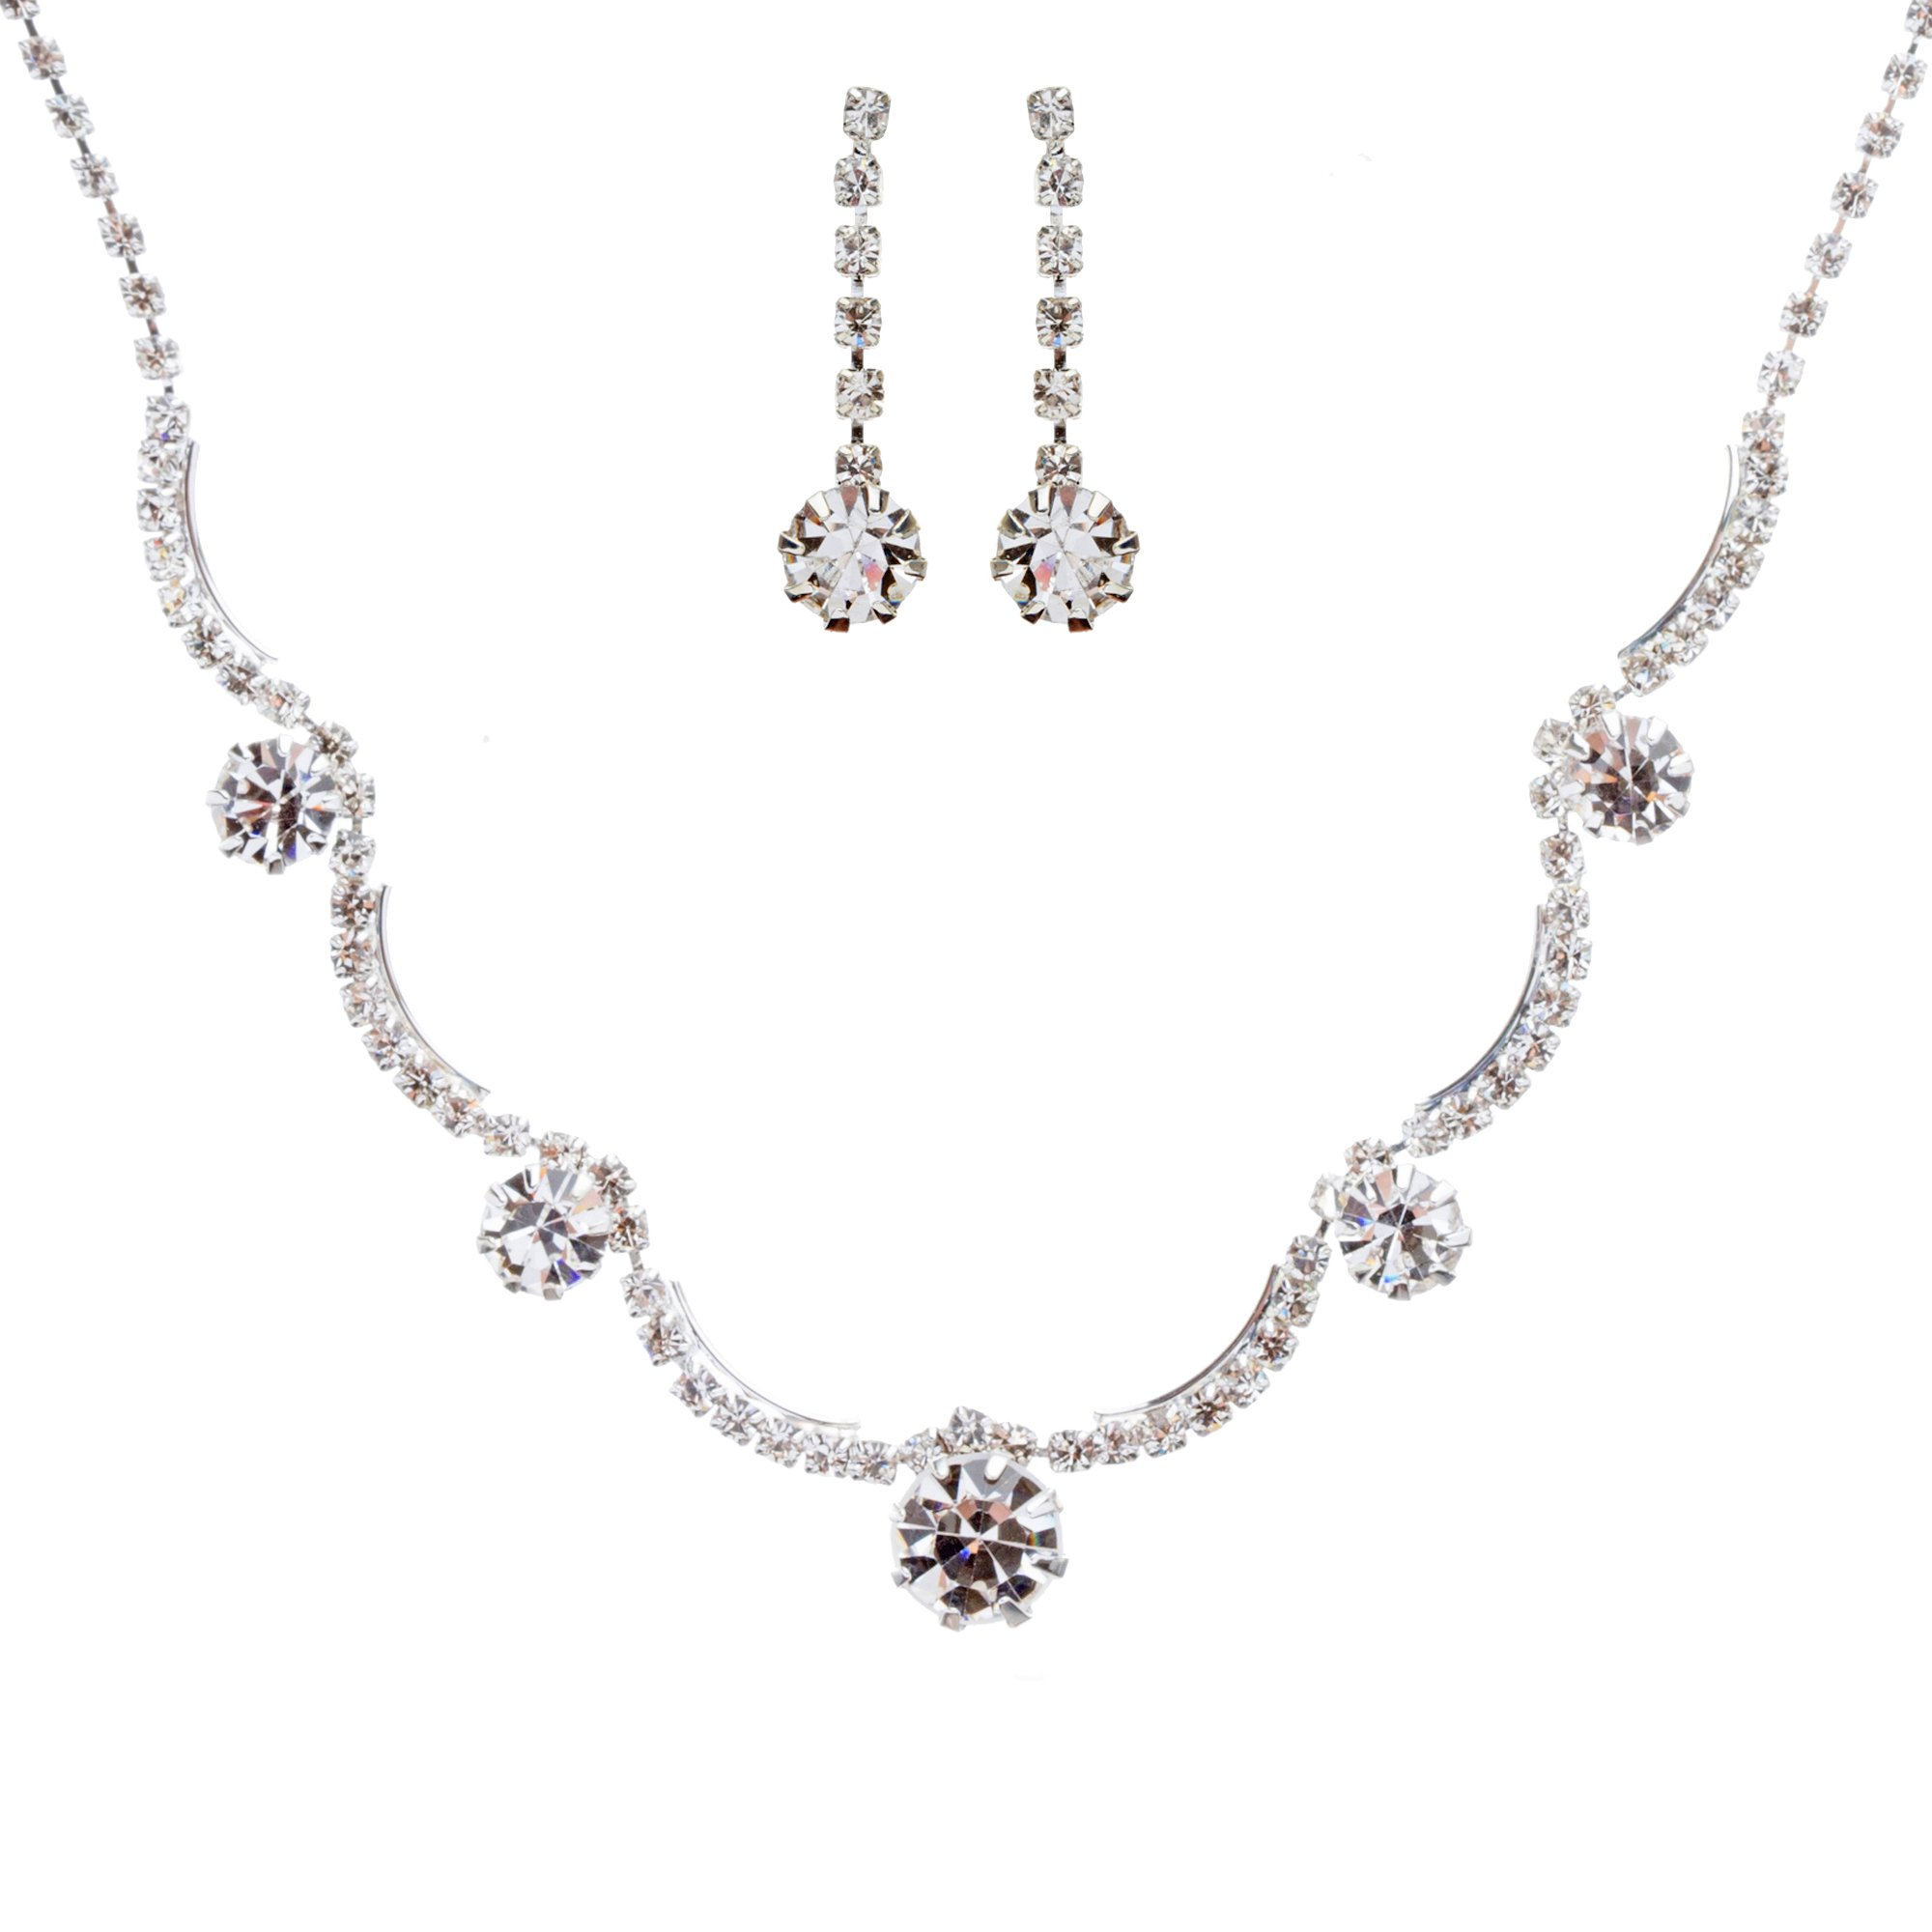 ACCESSORIESFOREVER Bridal Wedding Prom Jewelry Set Crystal Rhinestone Gorgeous Curved Design Necklace